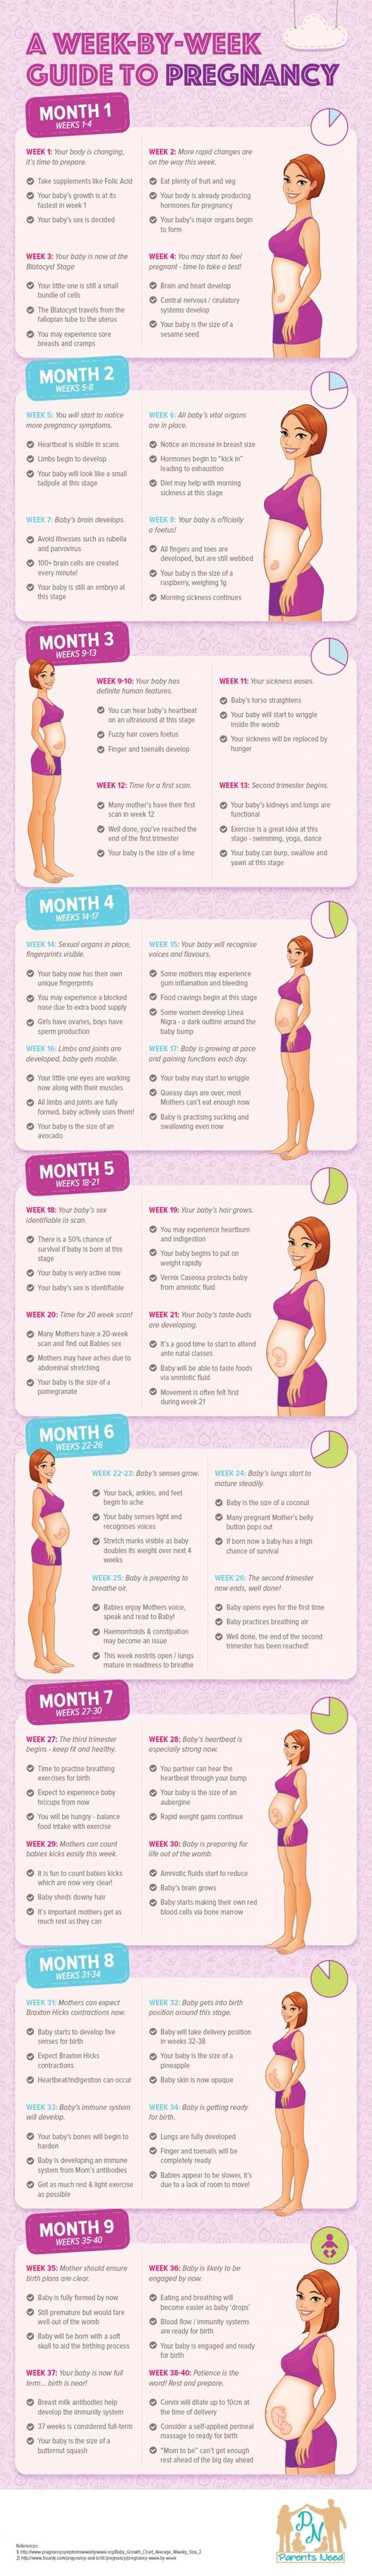 Guide to Pregnancy Week by Week Infographic